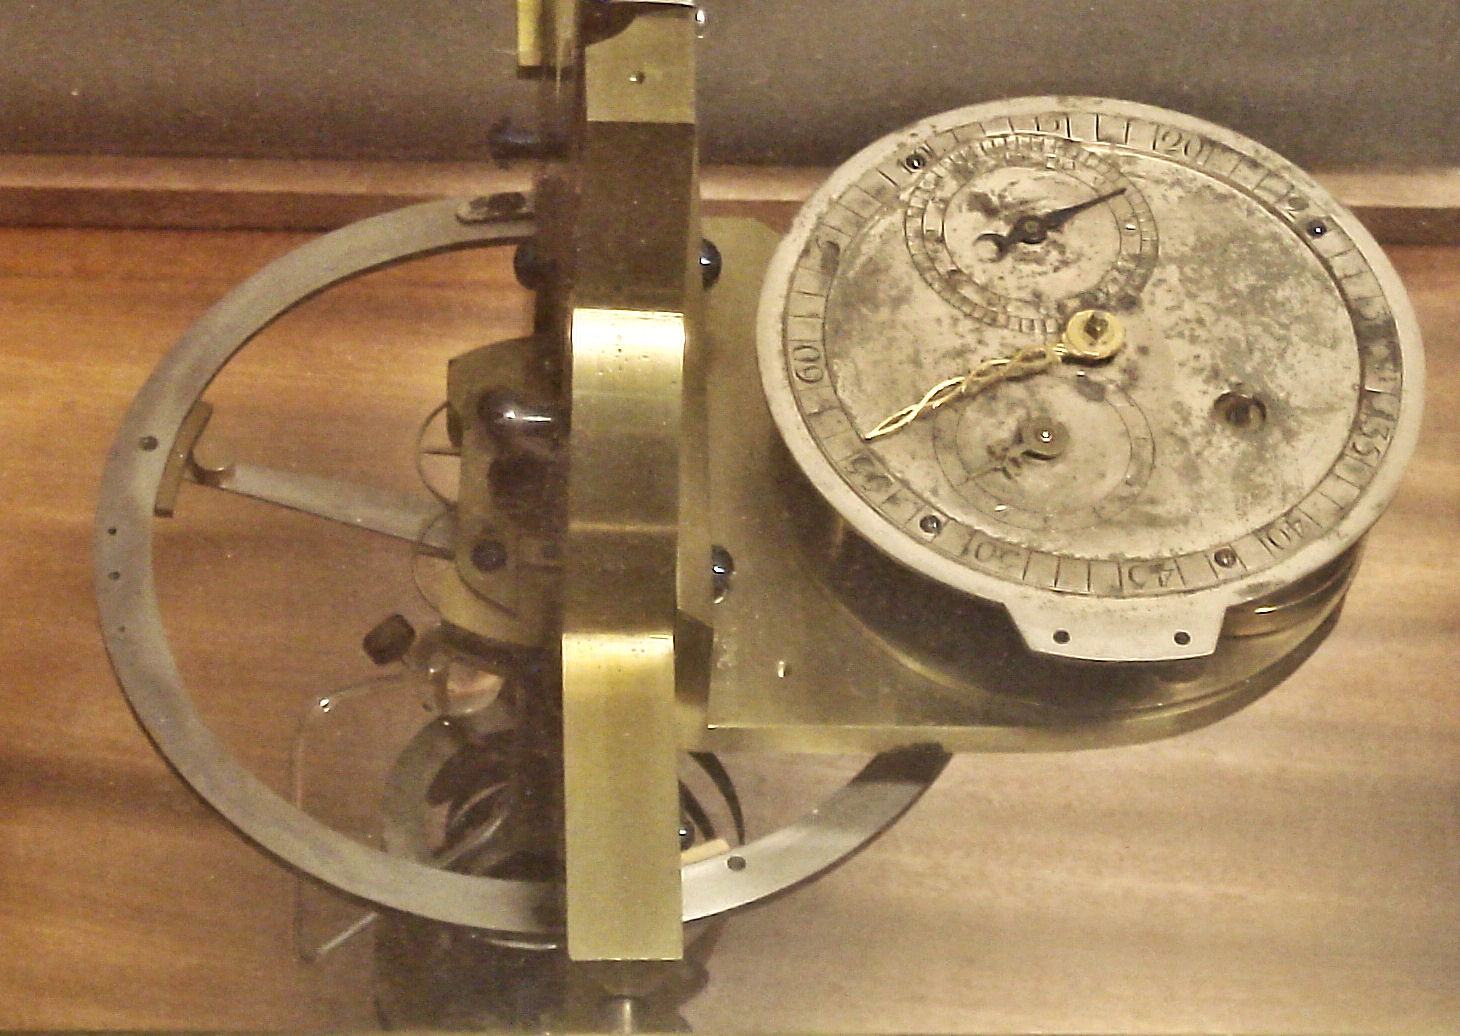 Marine chronometer - Wikipedia, the free encyclopediabalance of le roy town